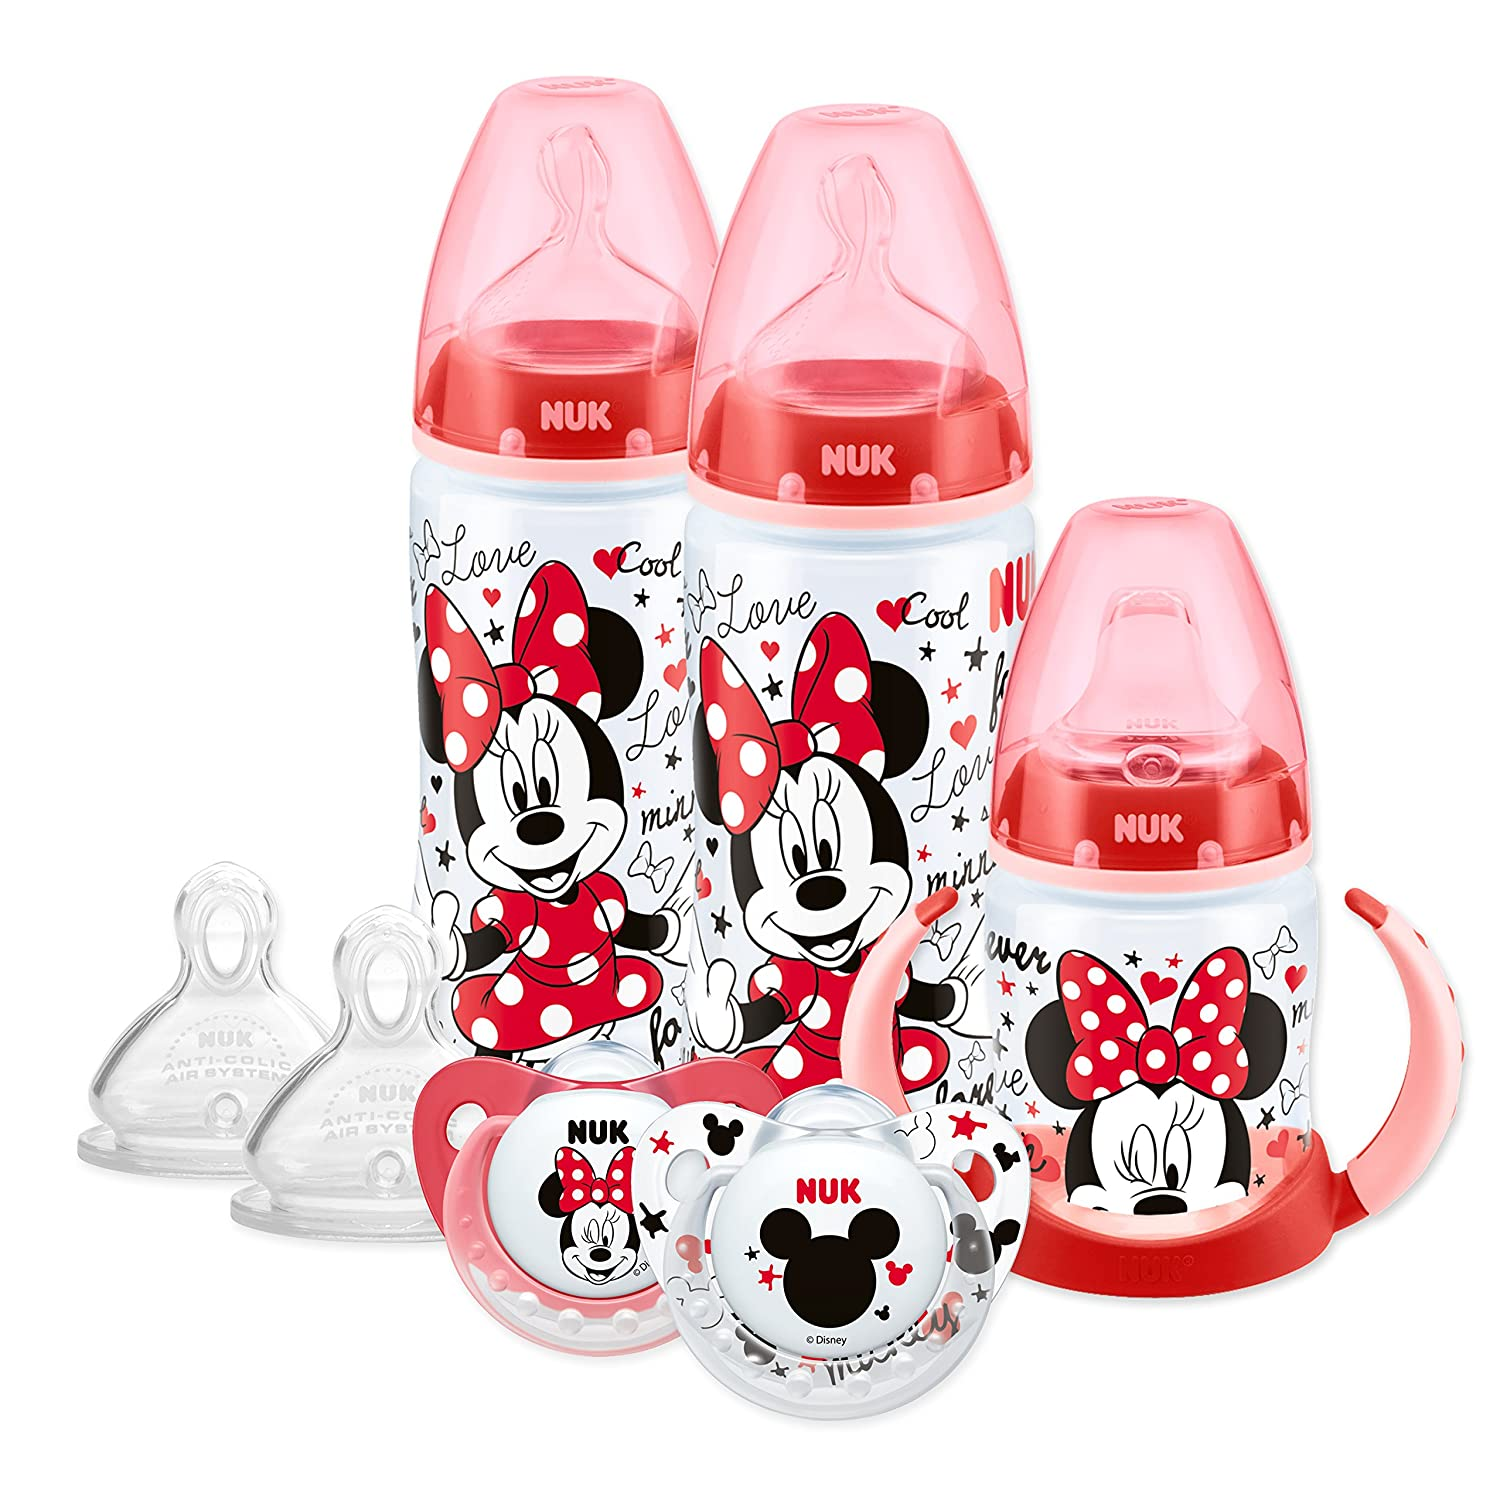 NUK Disney Minnie/Mickey Mouse Bottle, Cup & Soother Set (6-18 months, design may vary) 10759020